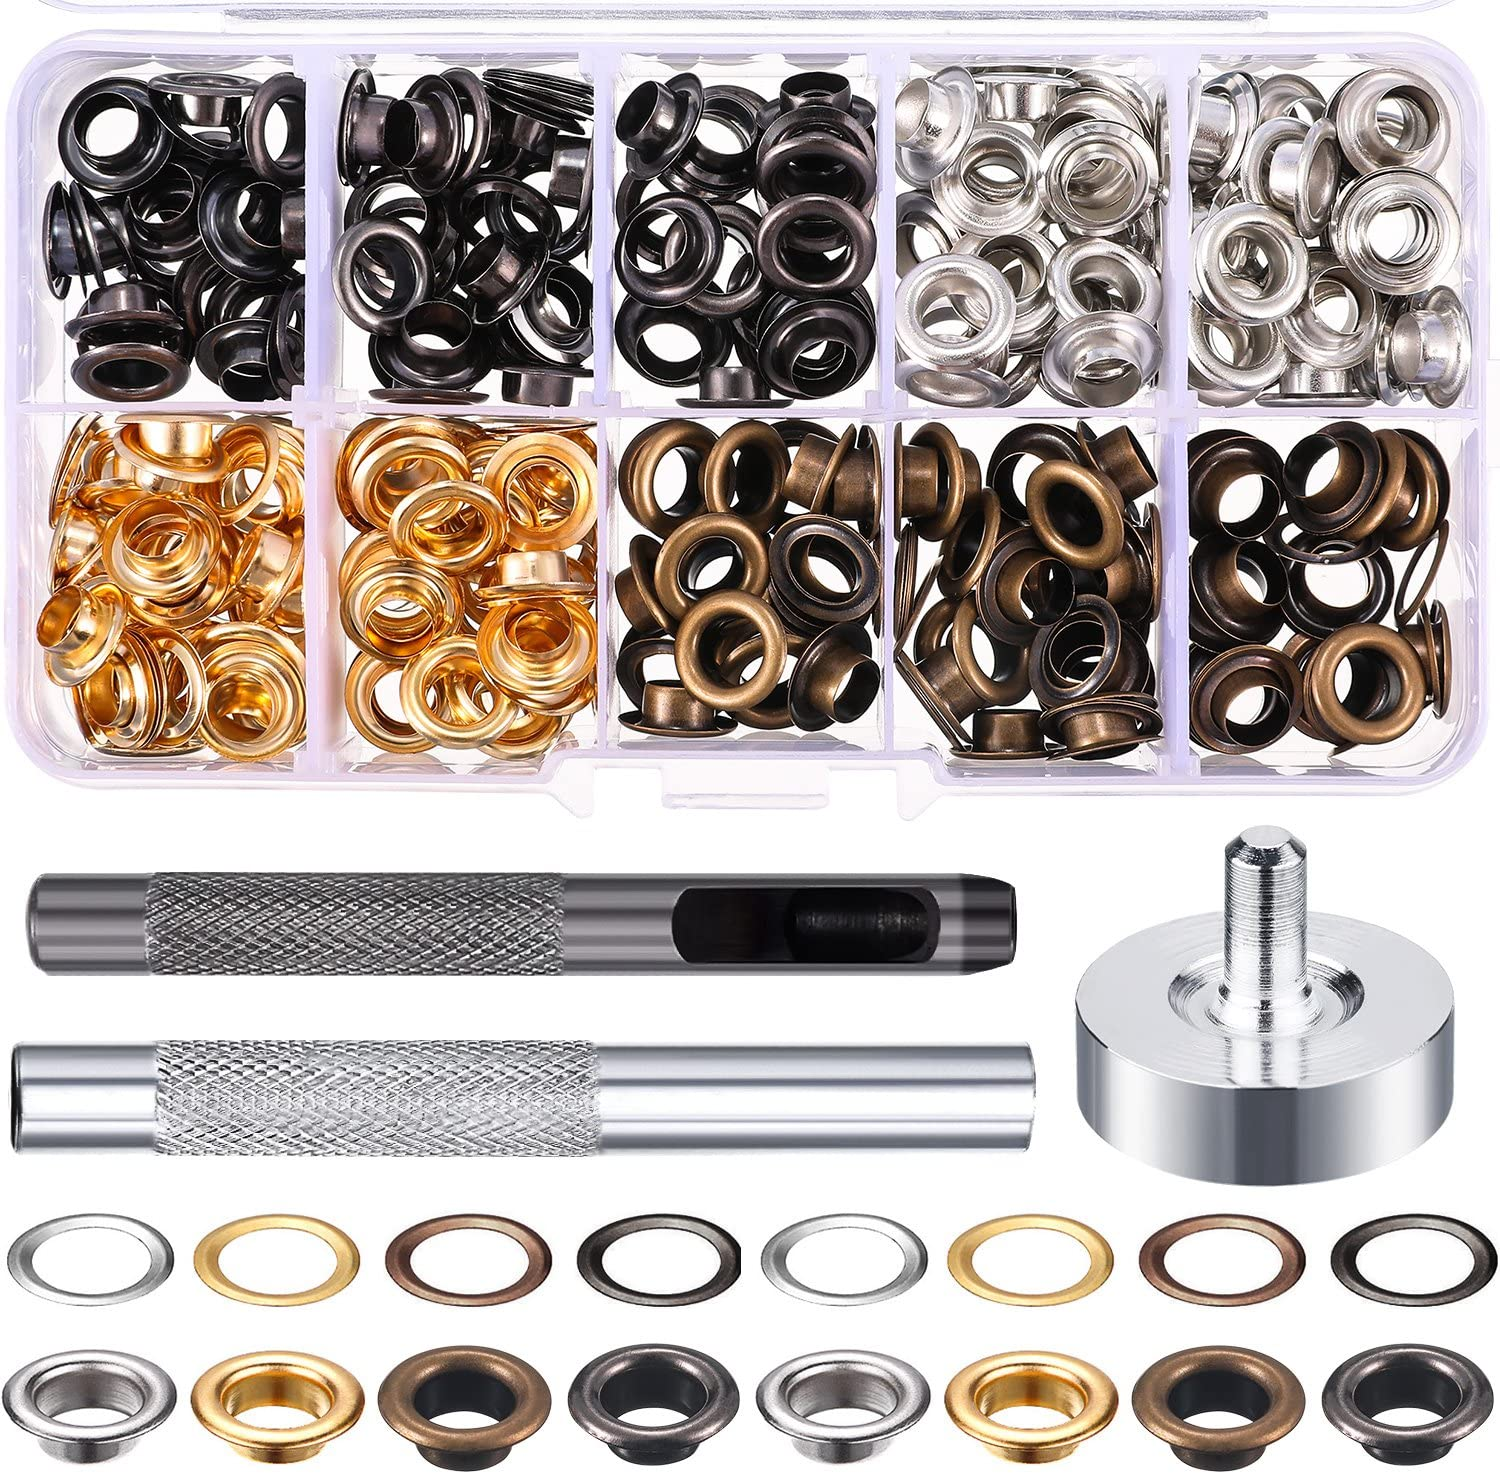 Grommet Kit 200 Sets Grommets Eyelets with 3 Pieces Install Tool